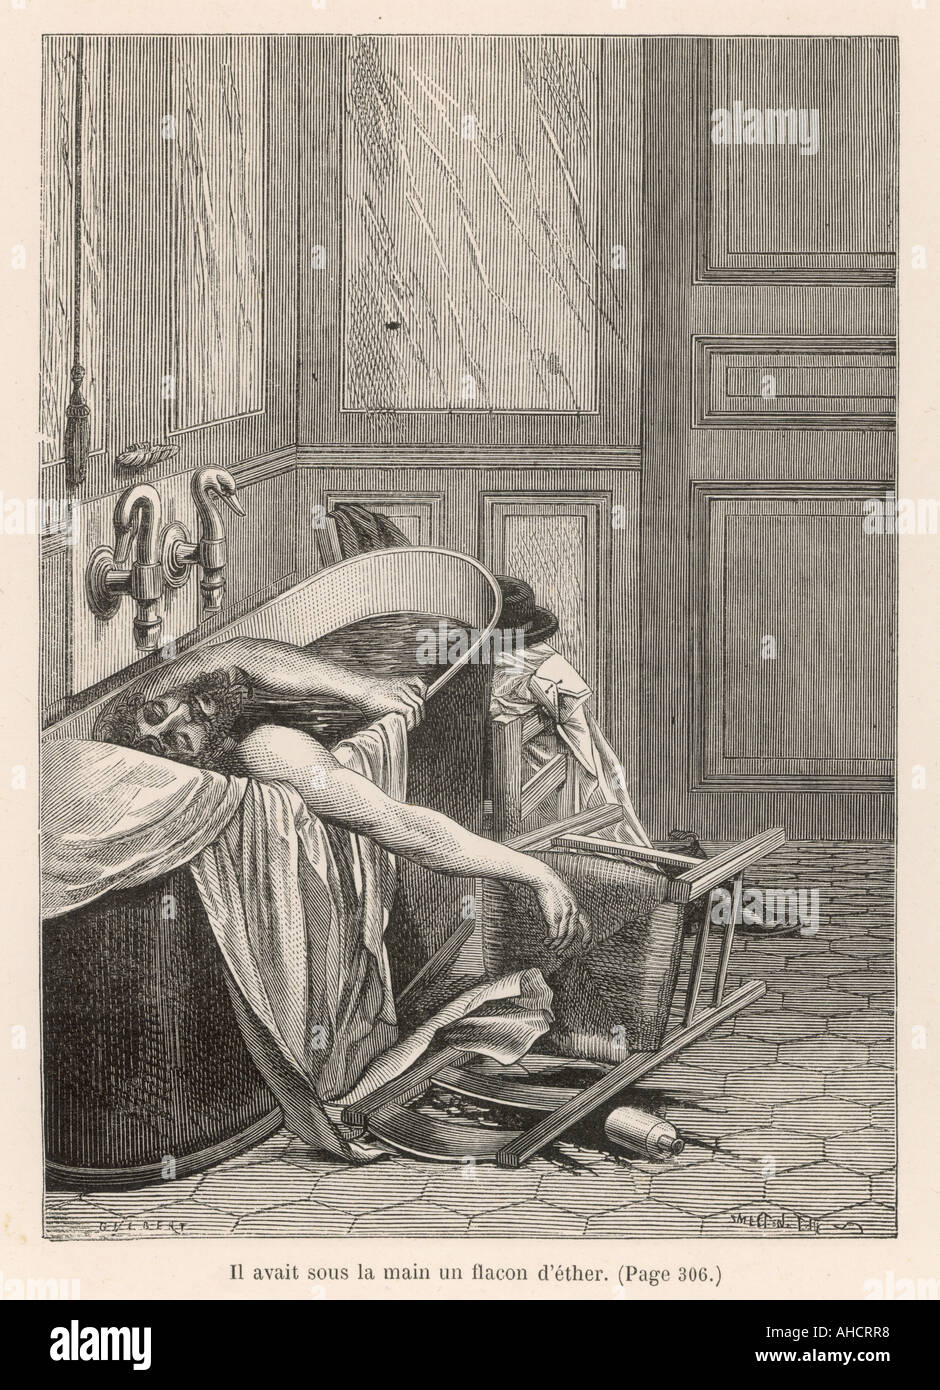 Horace Wells Martyrs Sci - Stock Image